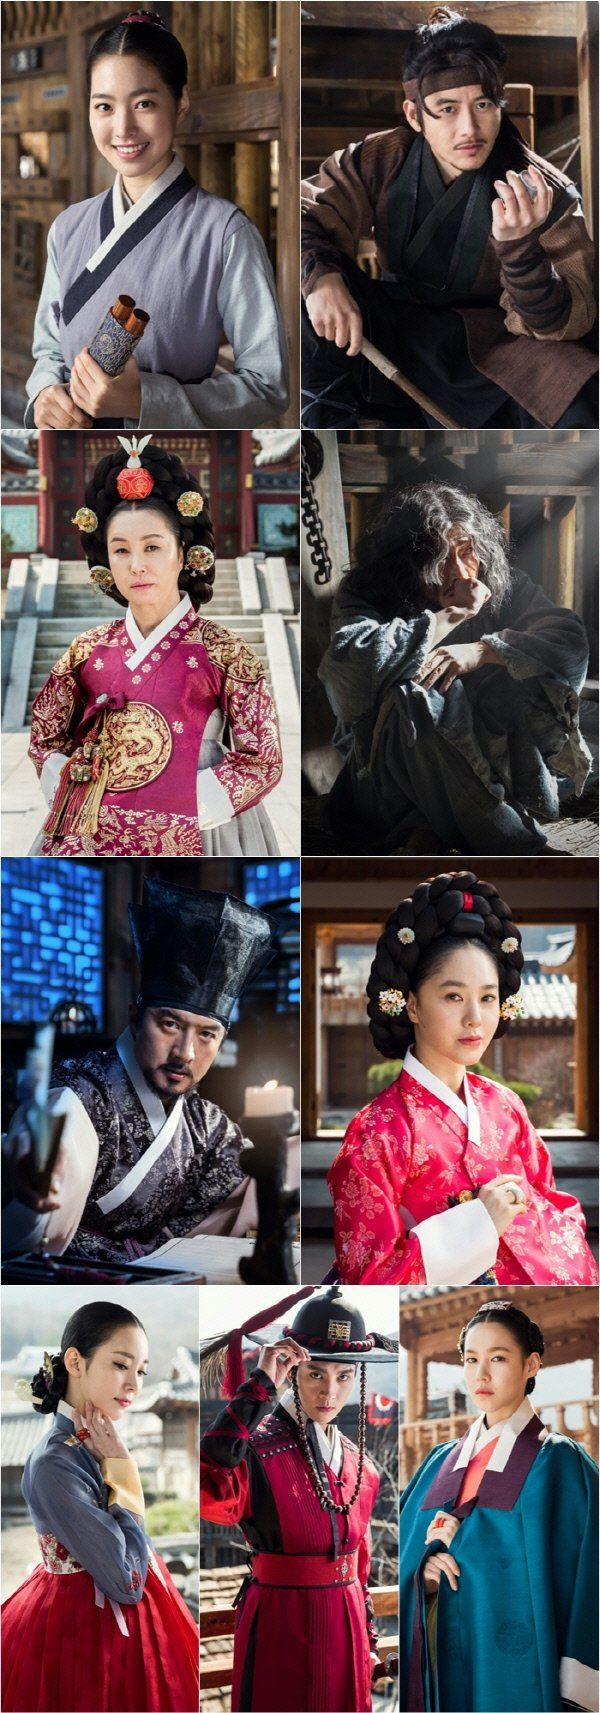 [Photos] Added new character stills and broadcast date for the #kdrama 'The Flower in Prison'